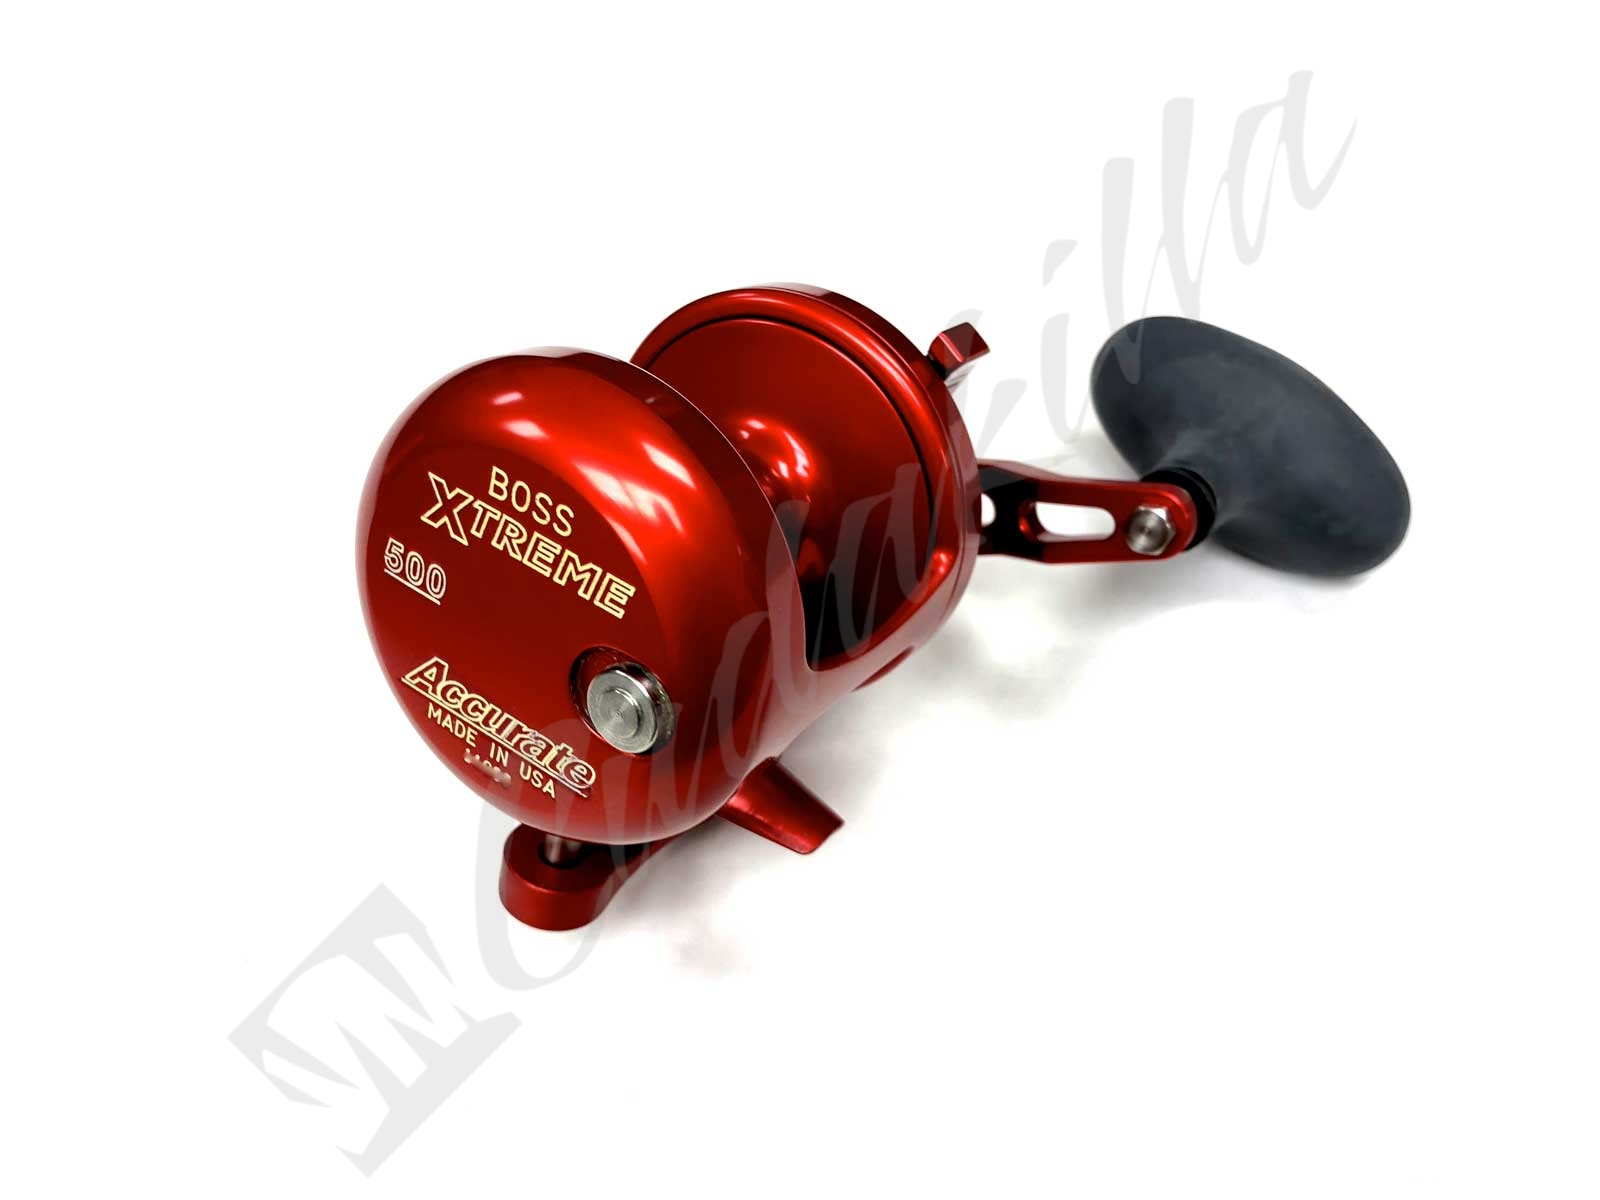 Accurate Boss Xtreme 500 Single Speed Conventional Reel - RED